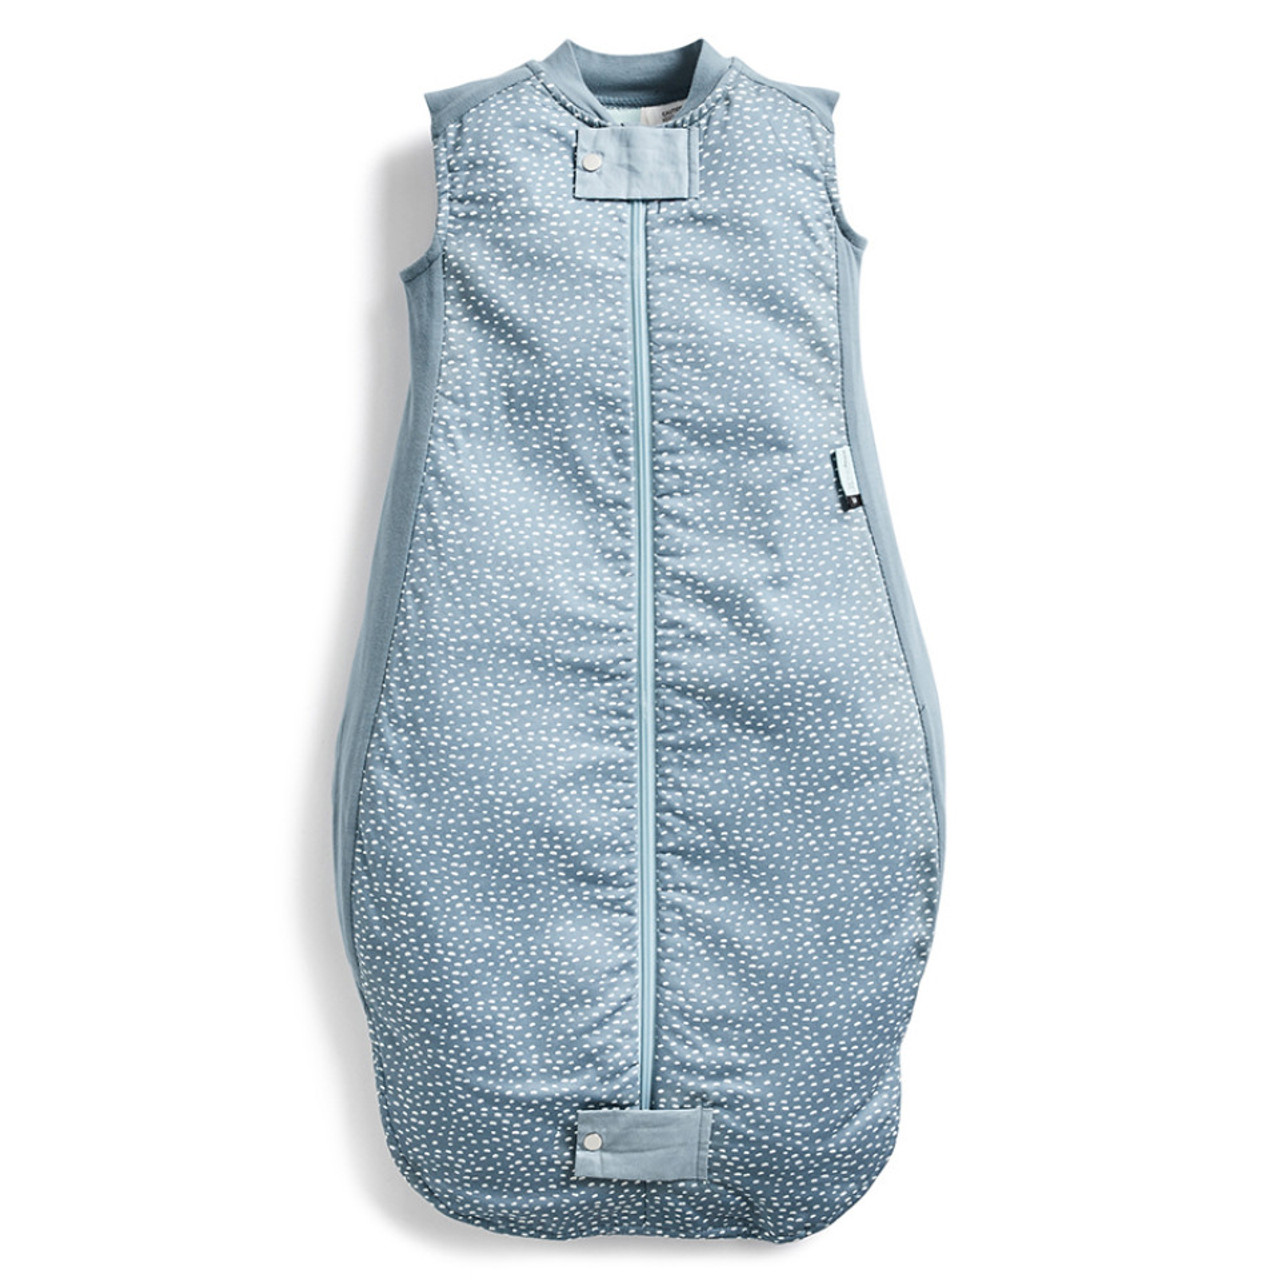 ergoPouch Sheeting Sleeping Bag 1.0 tog 2-12 Months - PEBBLE